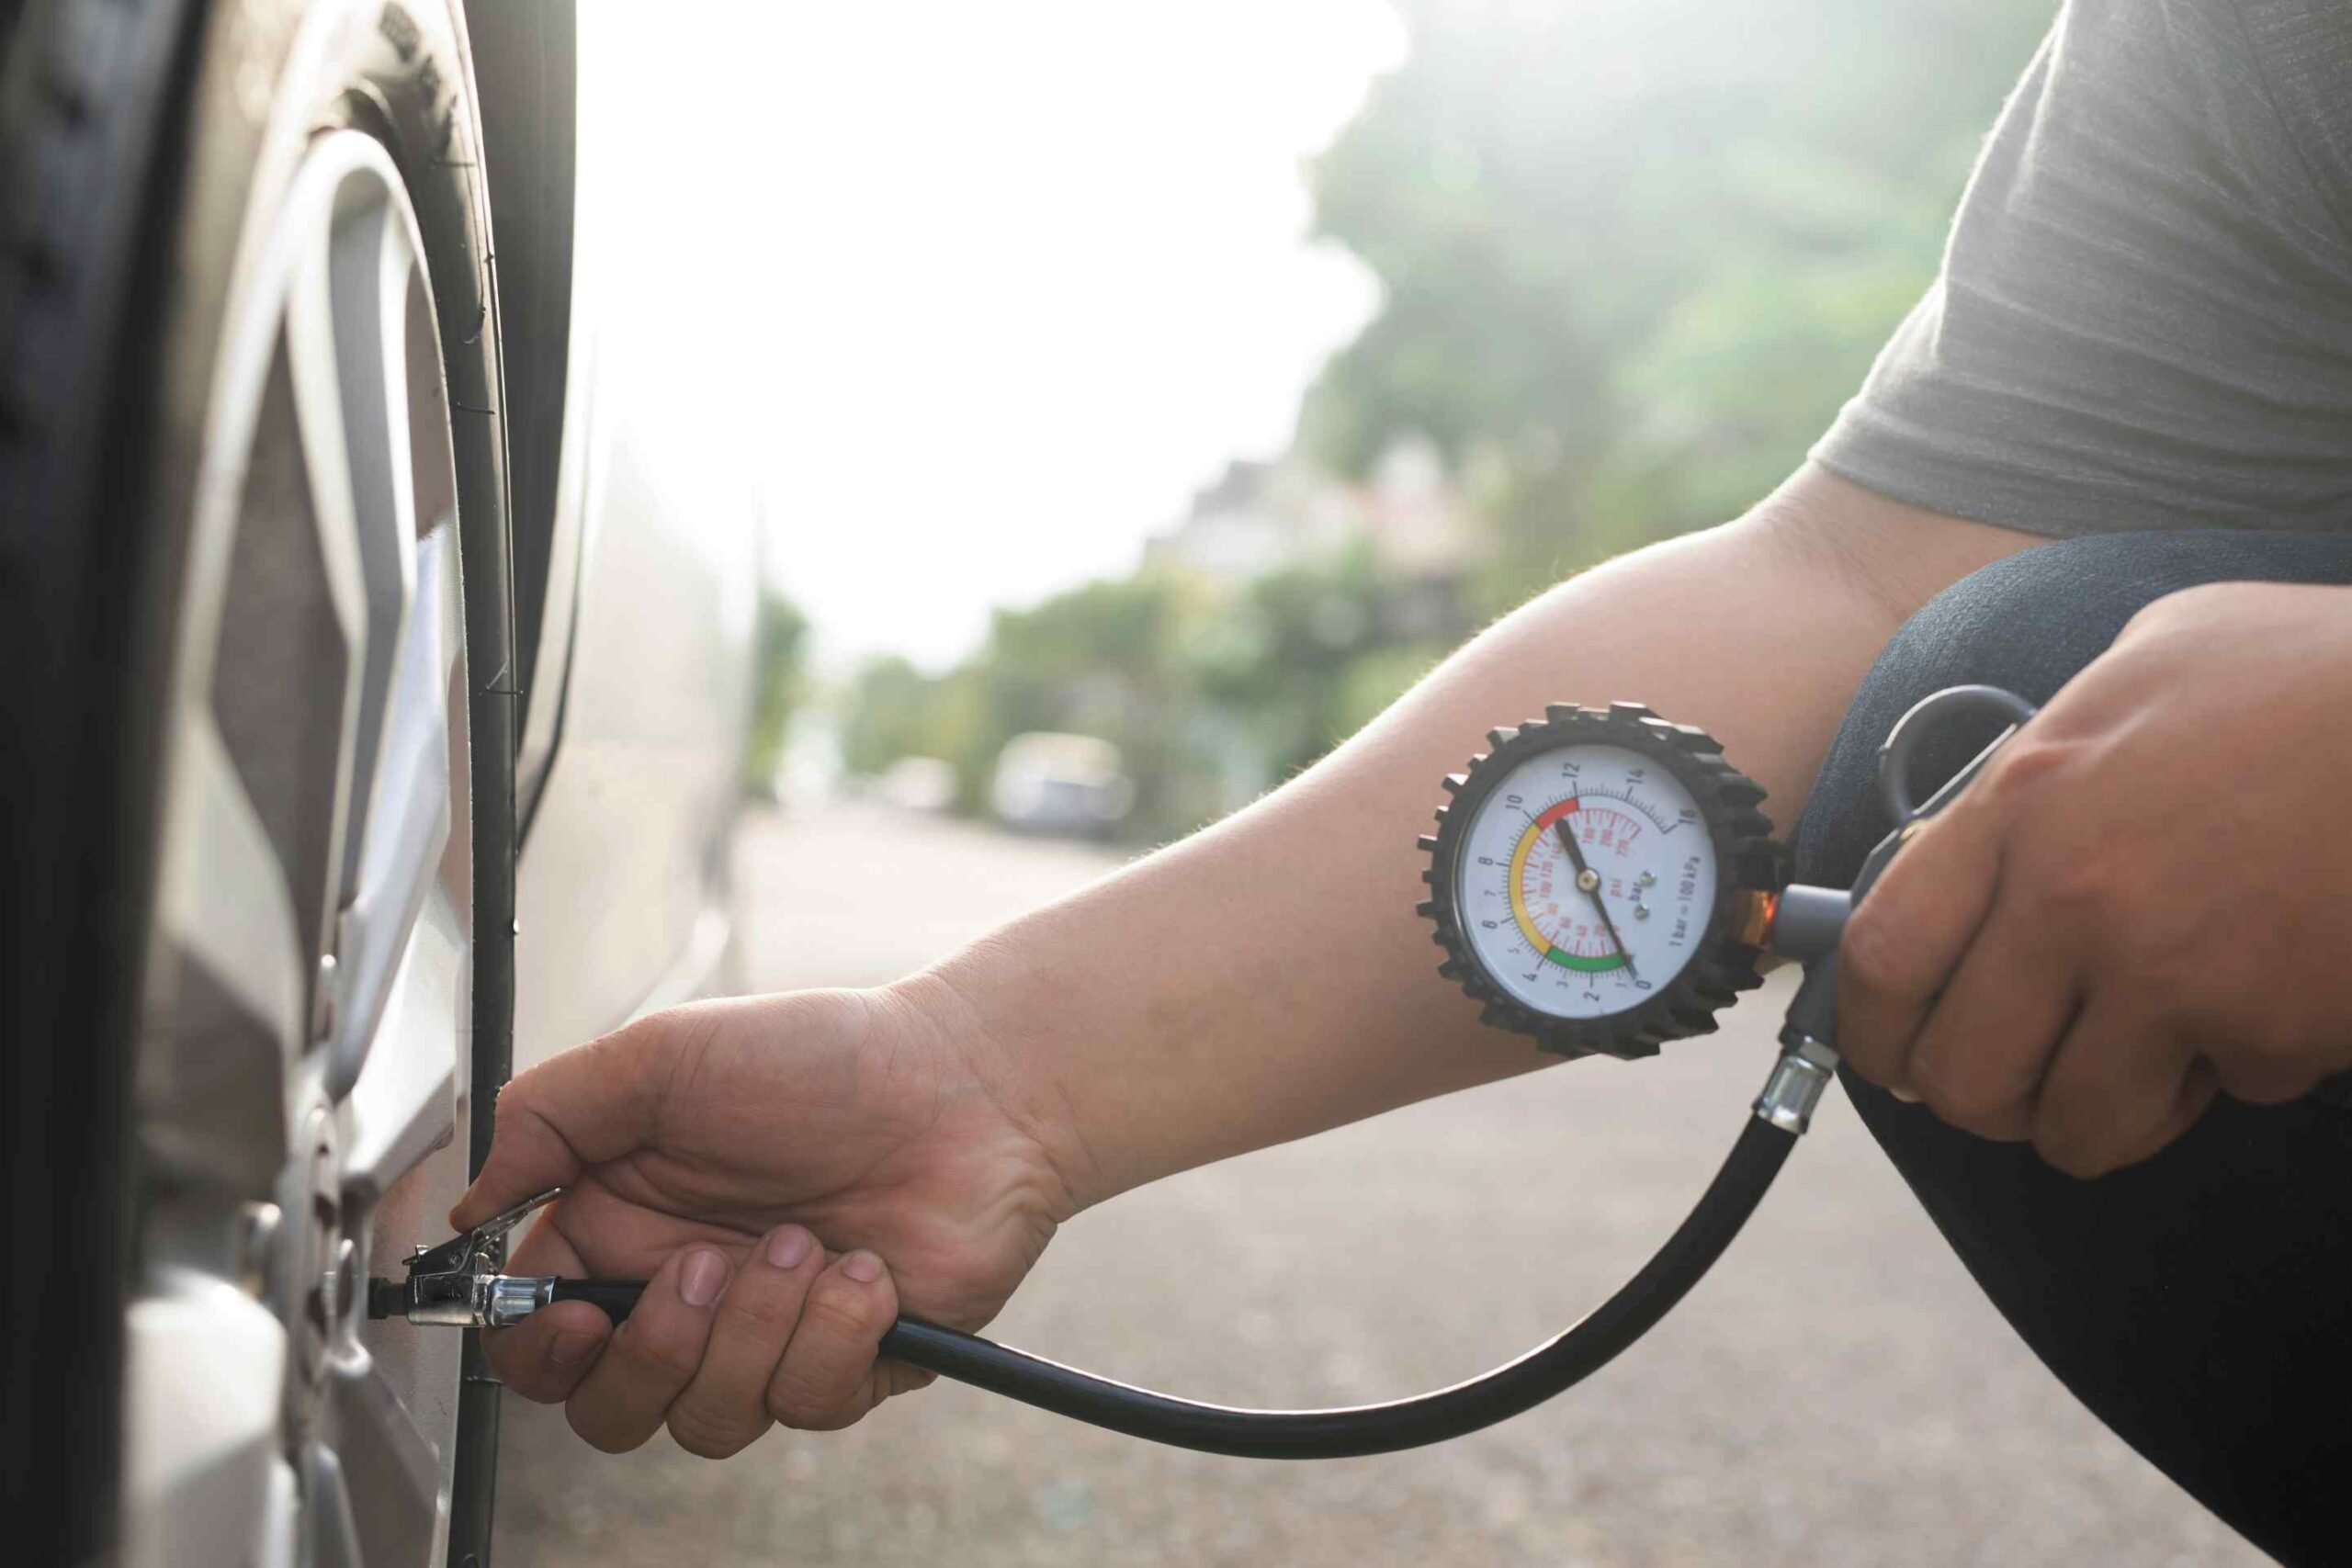 man inflating tire checking air pressure with tire gauge